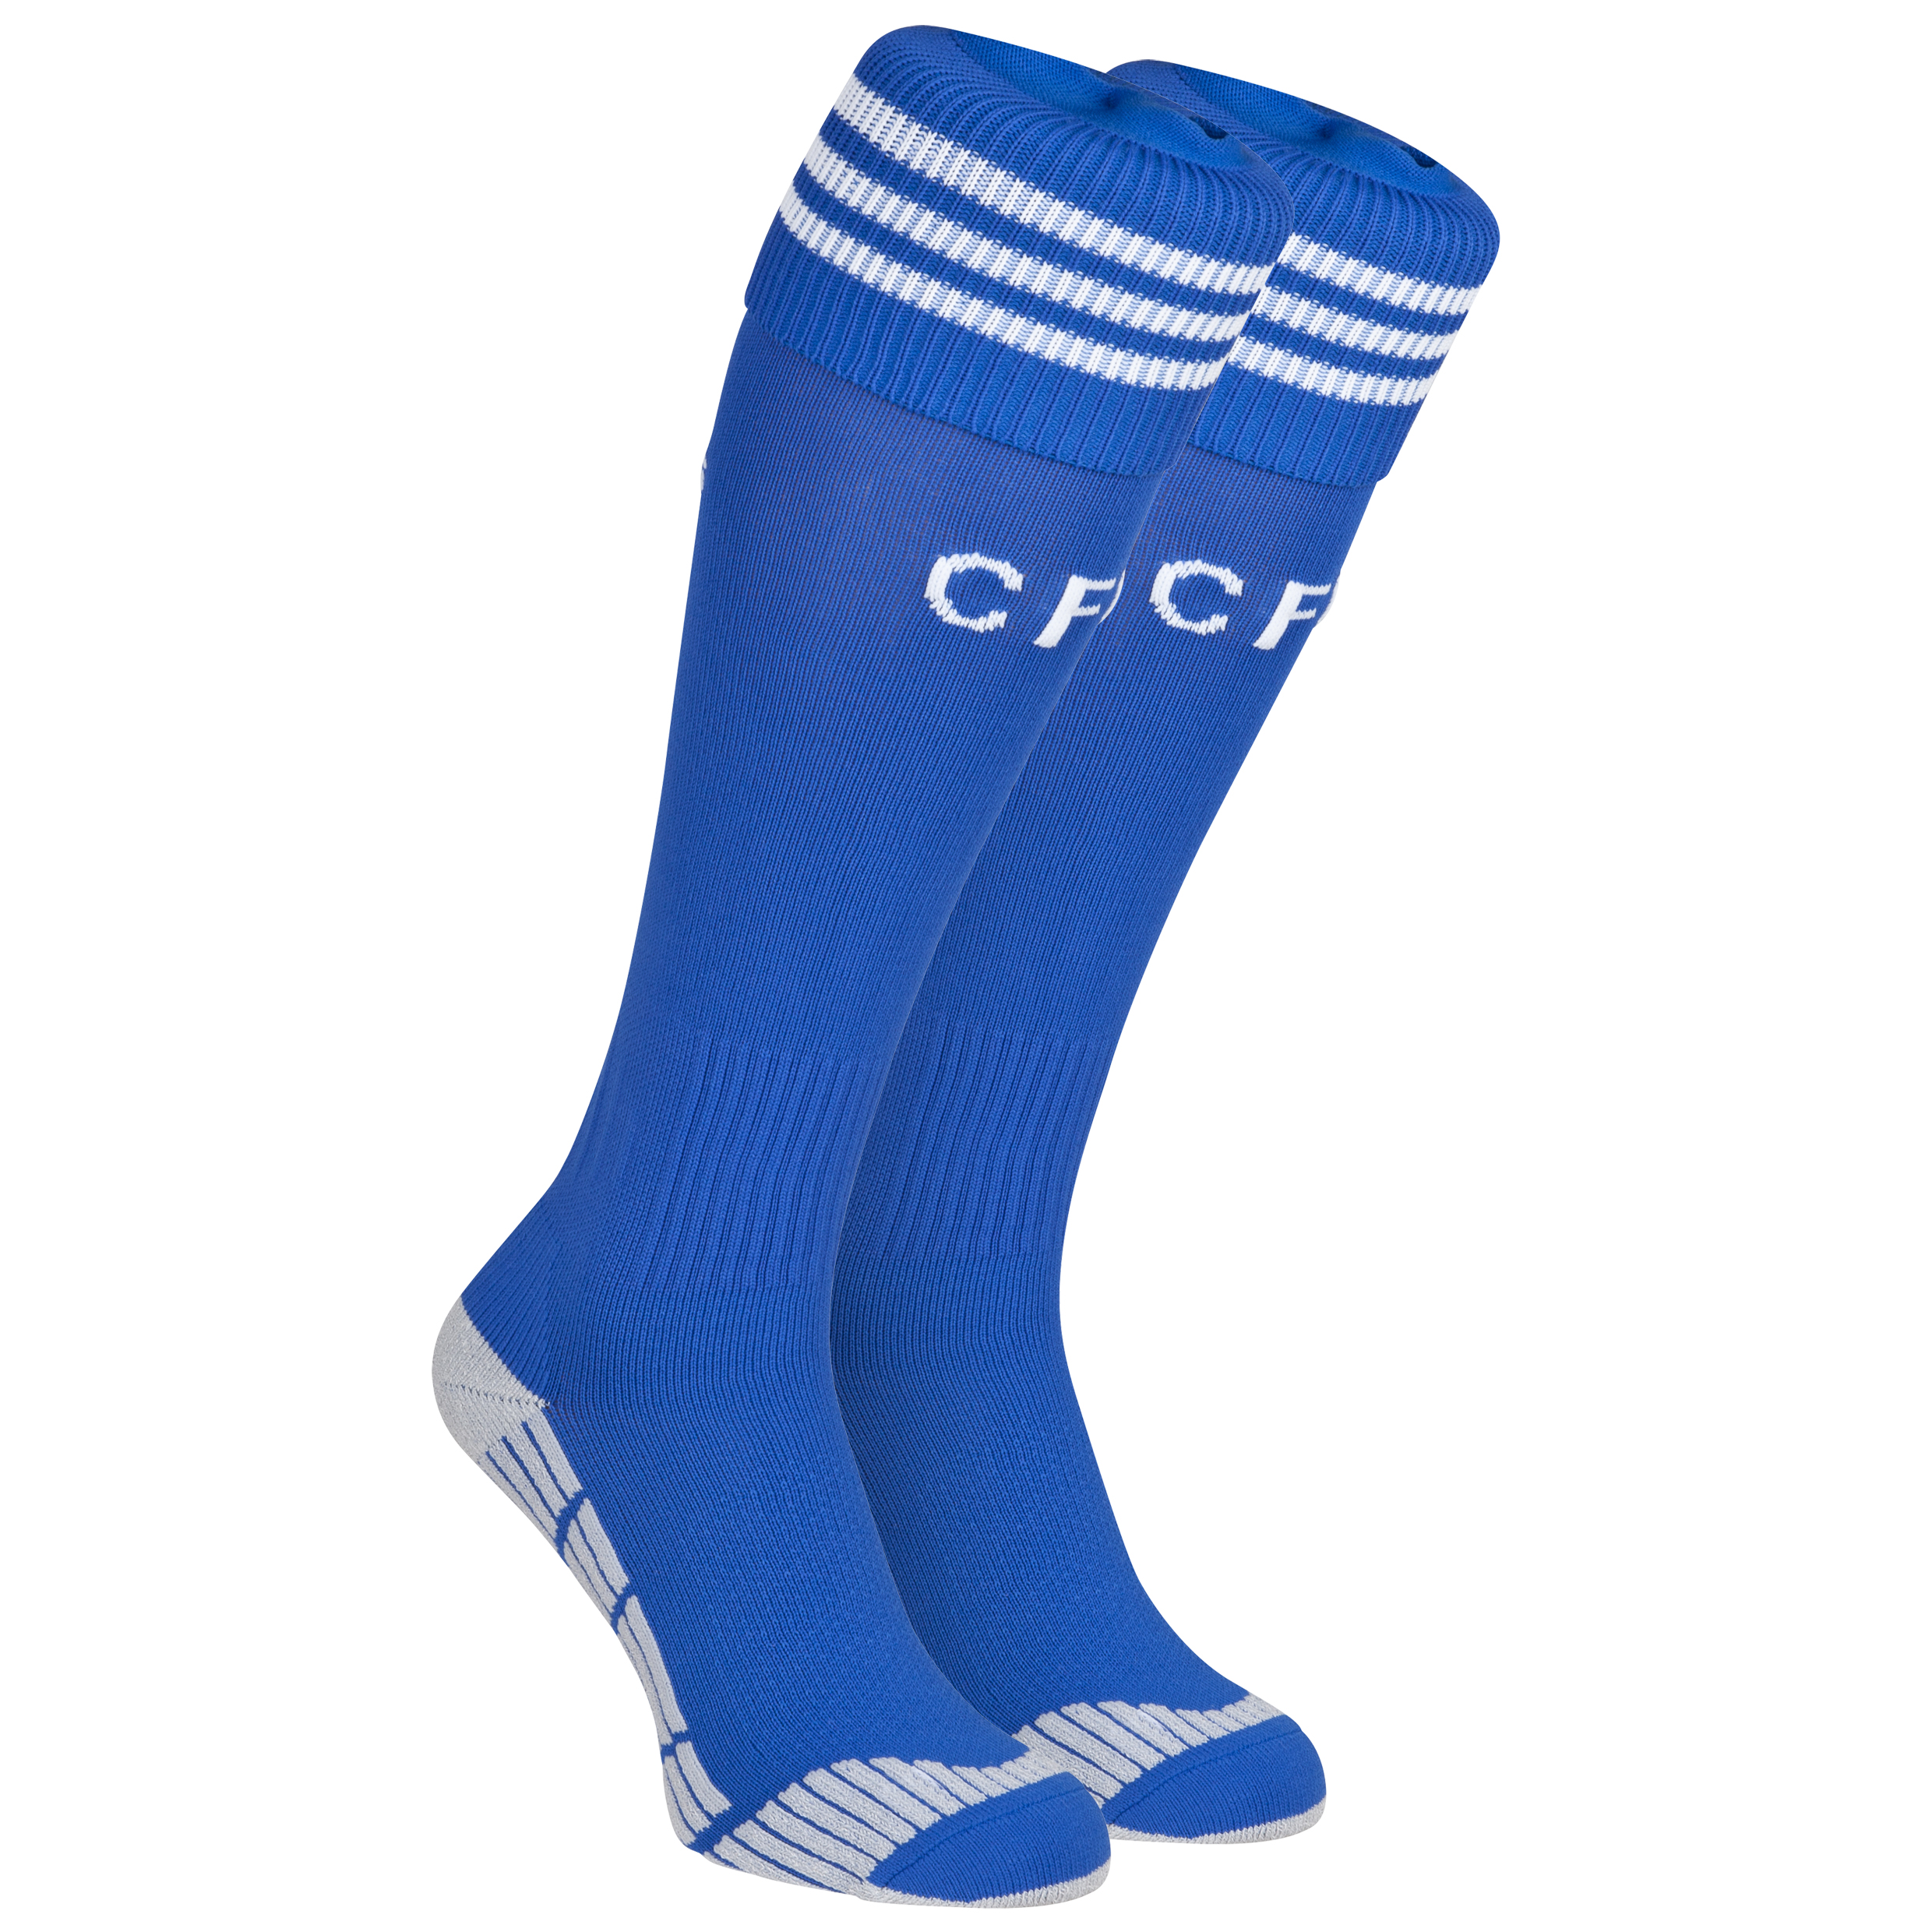 Chelsea Home Change Sock 2013/14